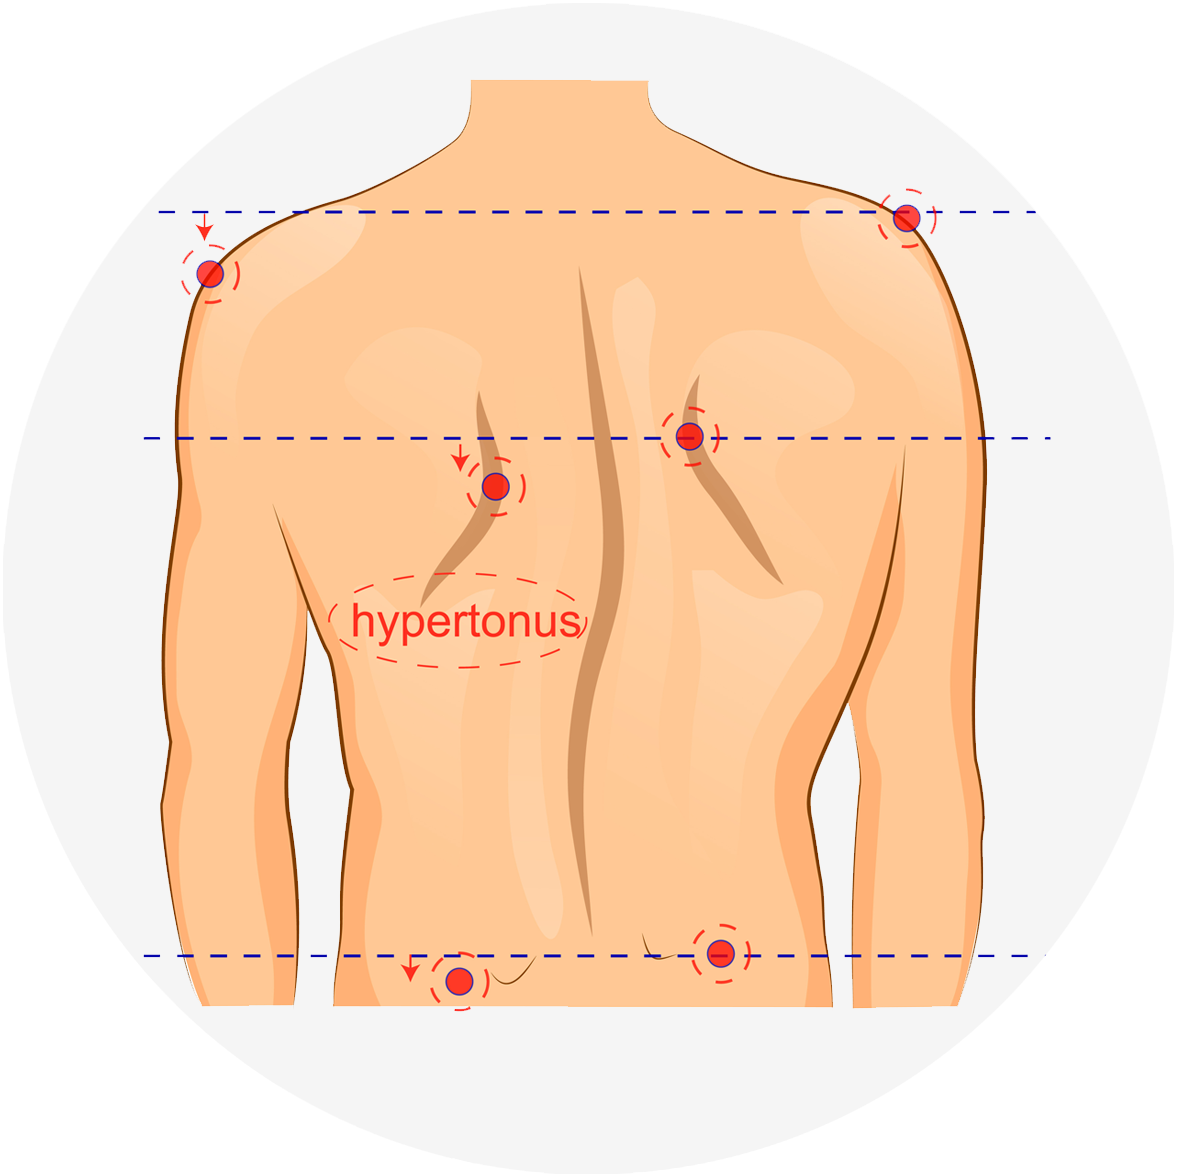 An image showing a human back and highlighting the different symptoms of scoliosis